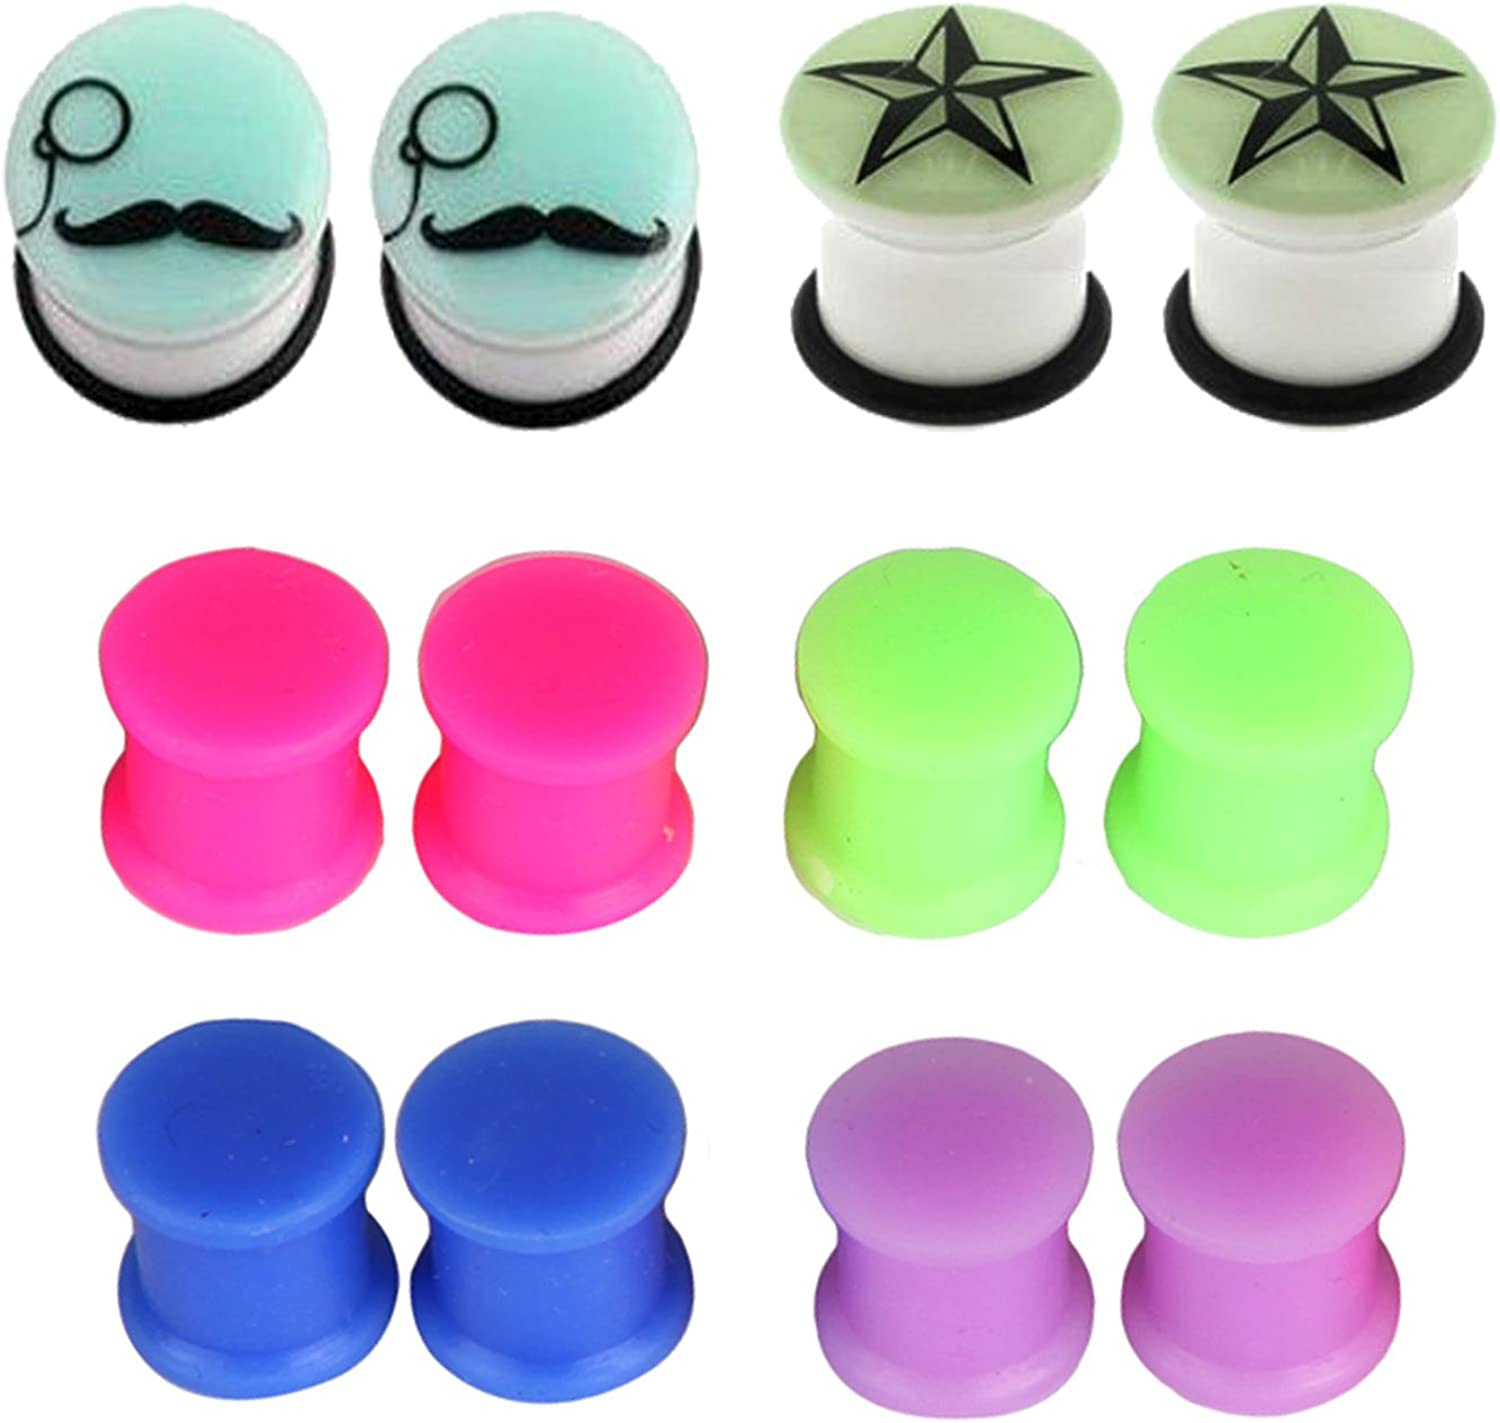 PAIR of GLOW IN THE DARK EAR PLUGS W//o-Rings SOLID GLOW GAUGES Sizes 8g-00g